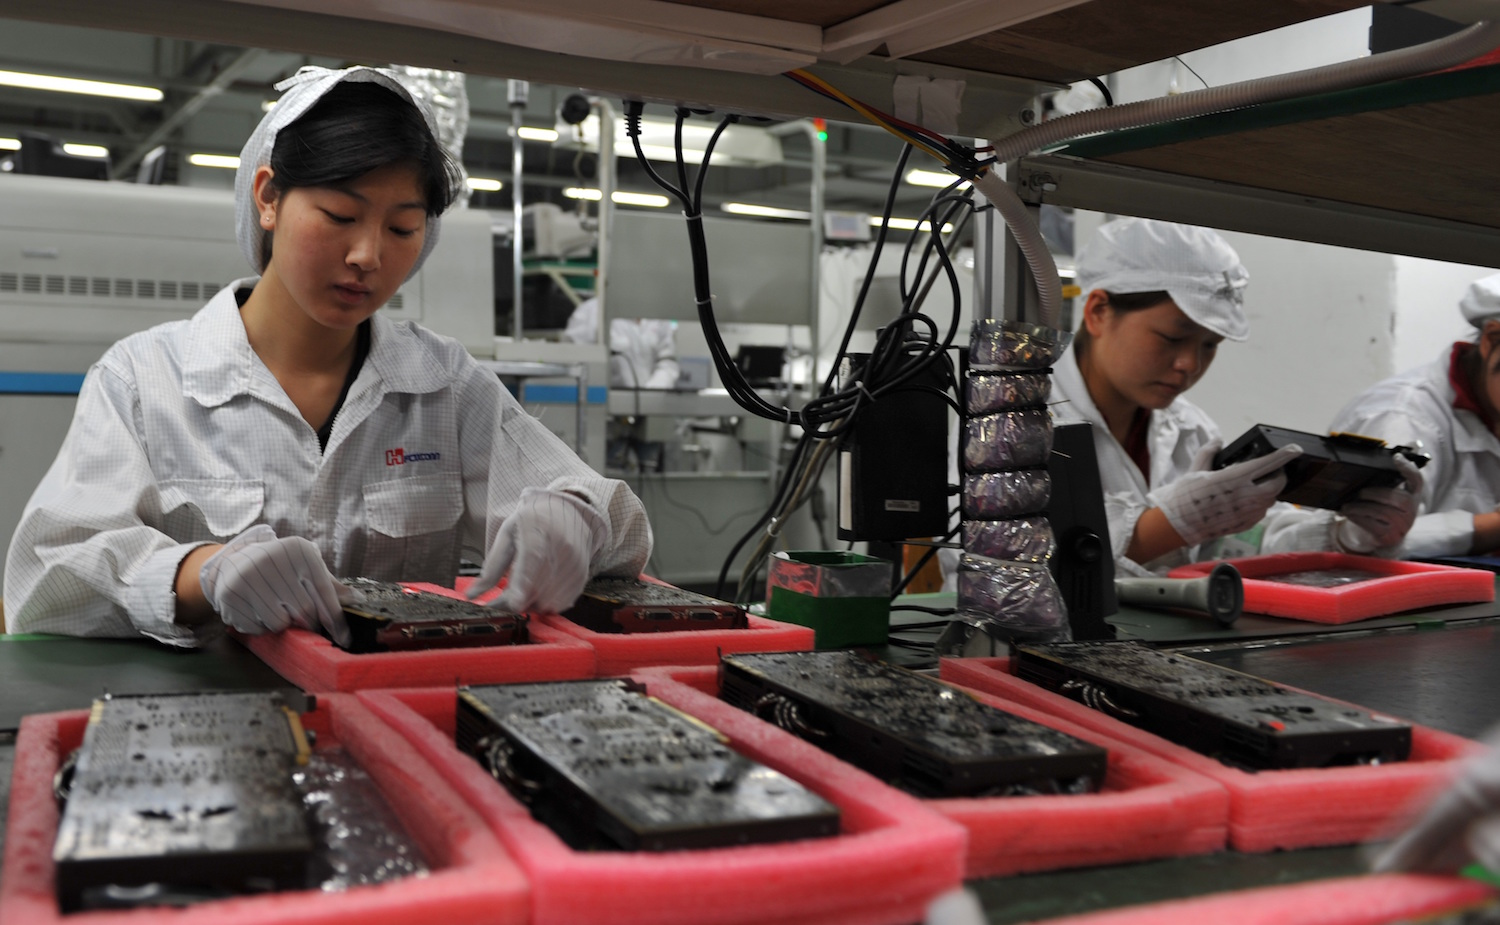 Foxconn workers continue to die